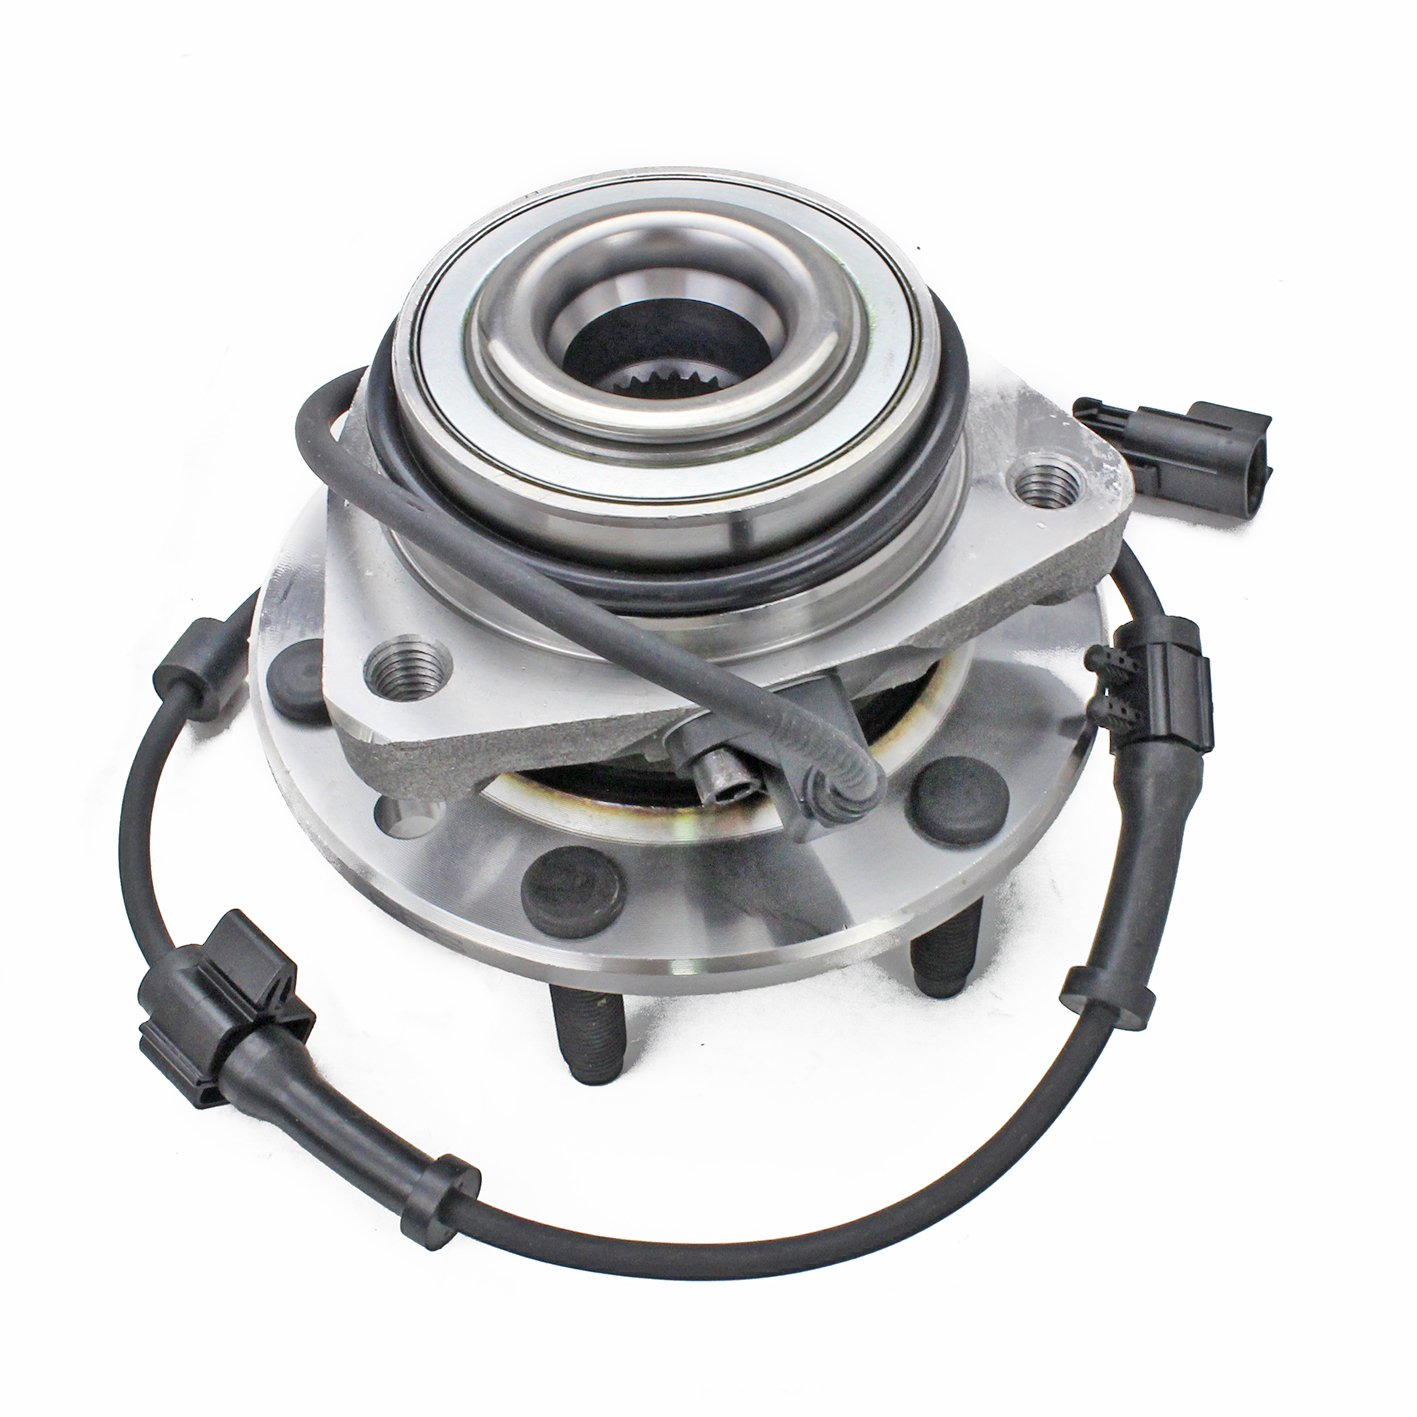 513188 Wheel Bearing Hub Assembly, Front Left/Right, for 02-09 Chevy Trailblazer (EXT)/ 02-07 SSR, GMC Envoy (XL) Denali/XUV, 03-08 Isuzu Ascender, 04-07 Buick Rainier, 02-04 ldsmobile Bravada CRS